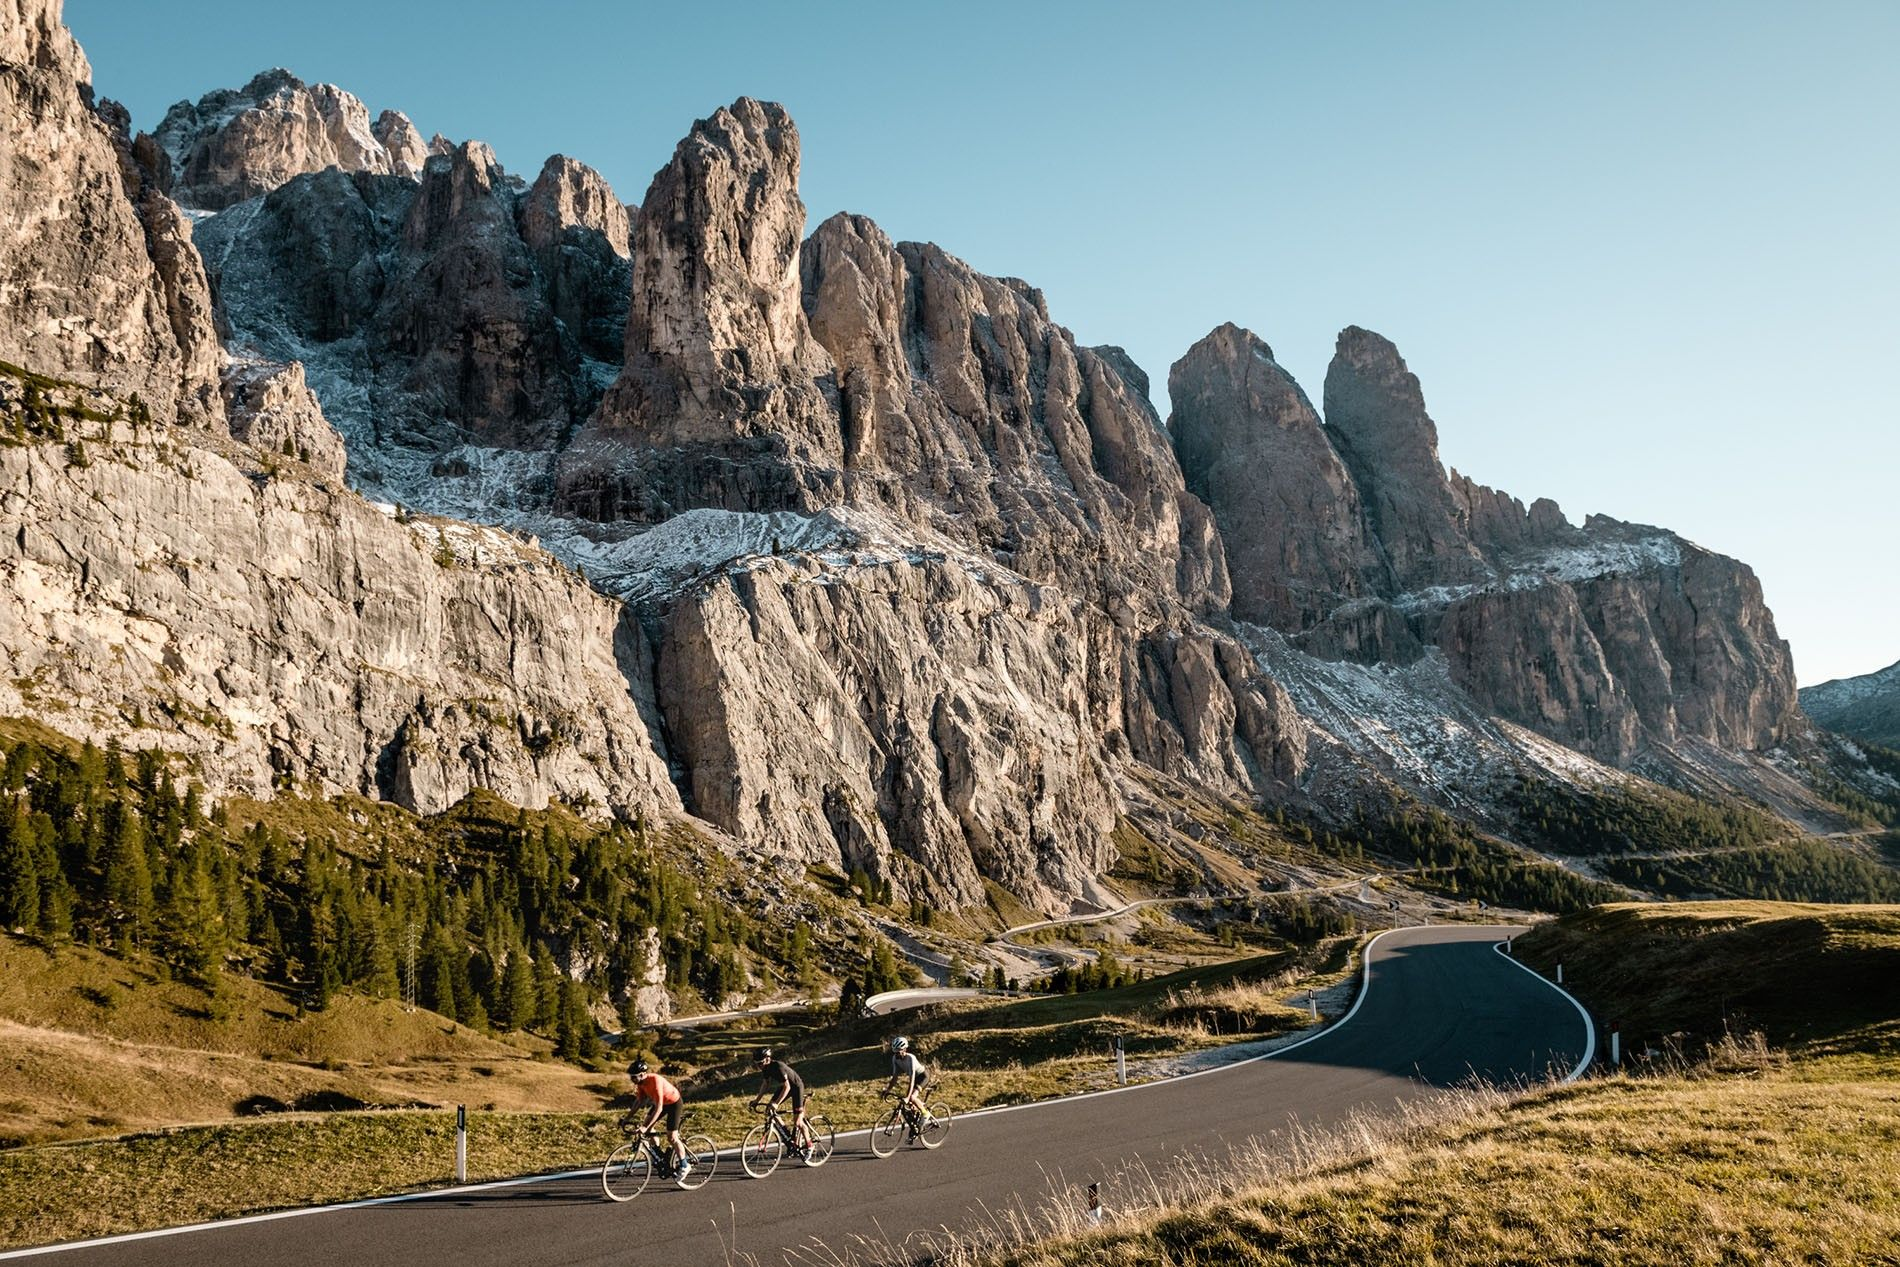 Threading your way through the Dolomites in Alta Badia is one of cycling's biggest thrills.